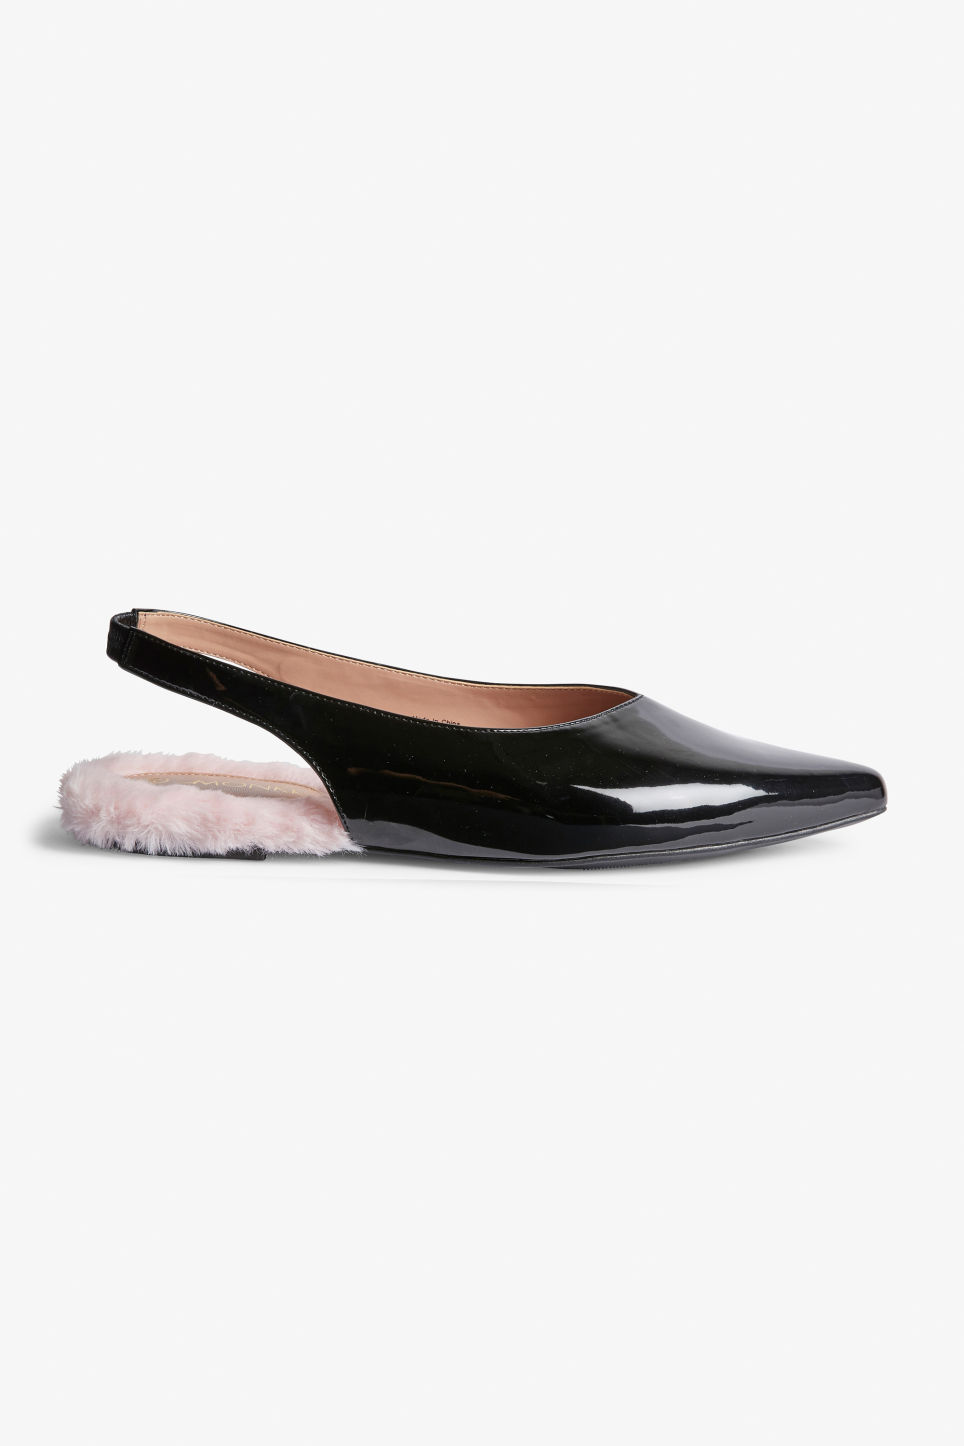 Detailed image of Monki slingback flats in black